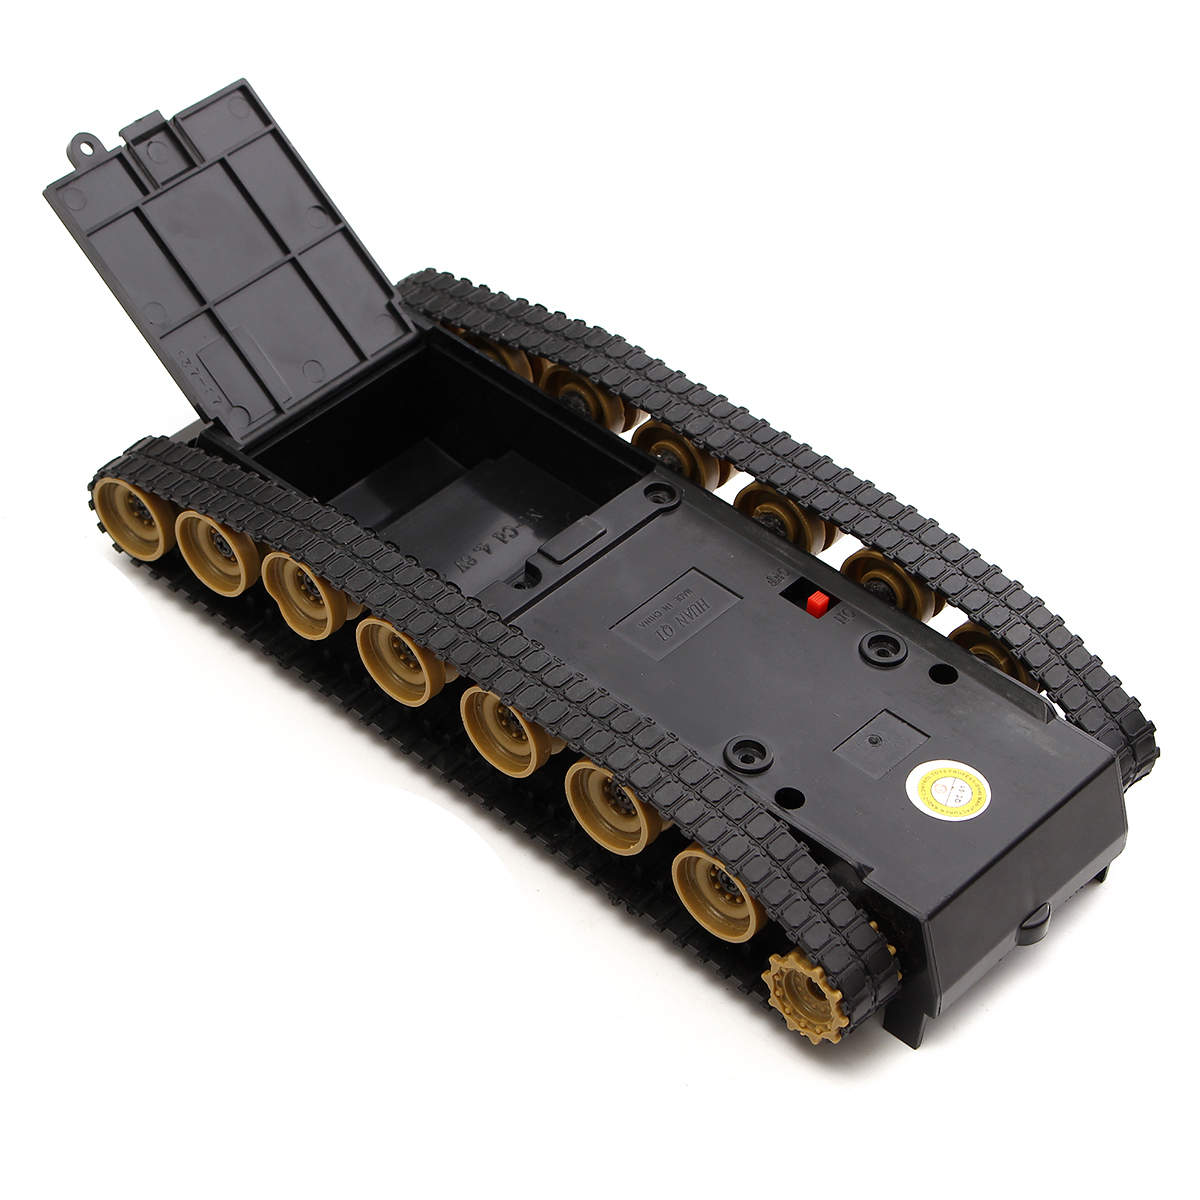 Diy smart robot tank chassis tracking car kit for arduino